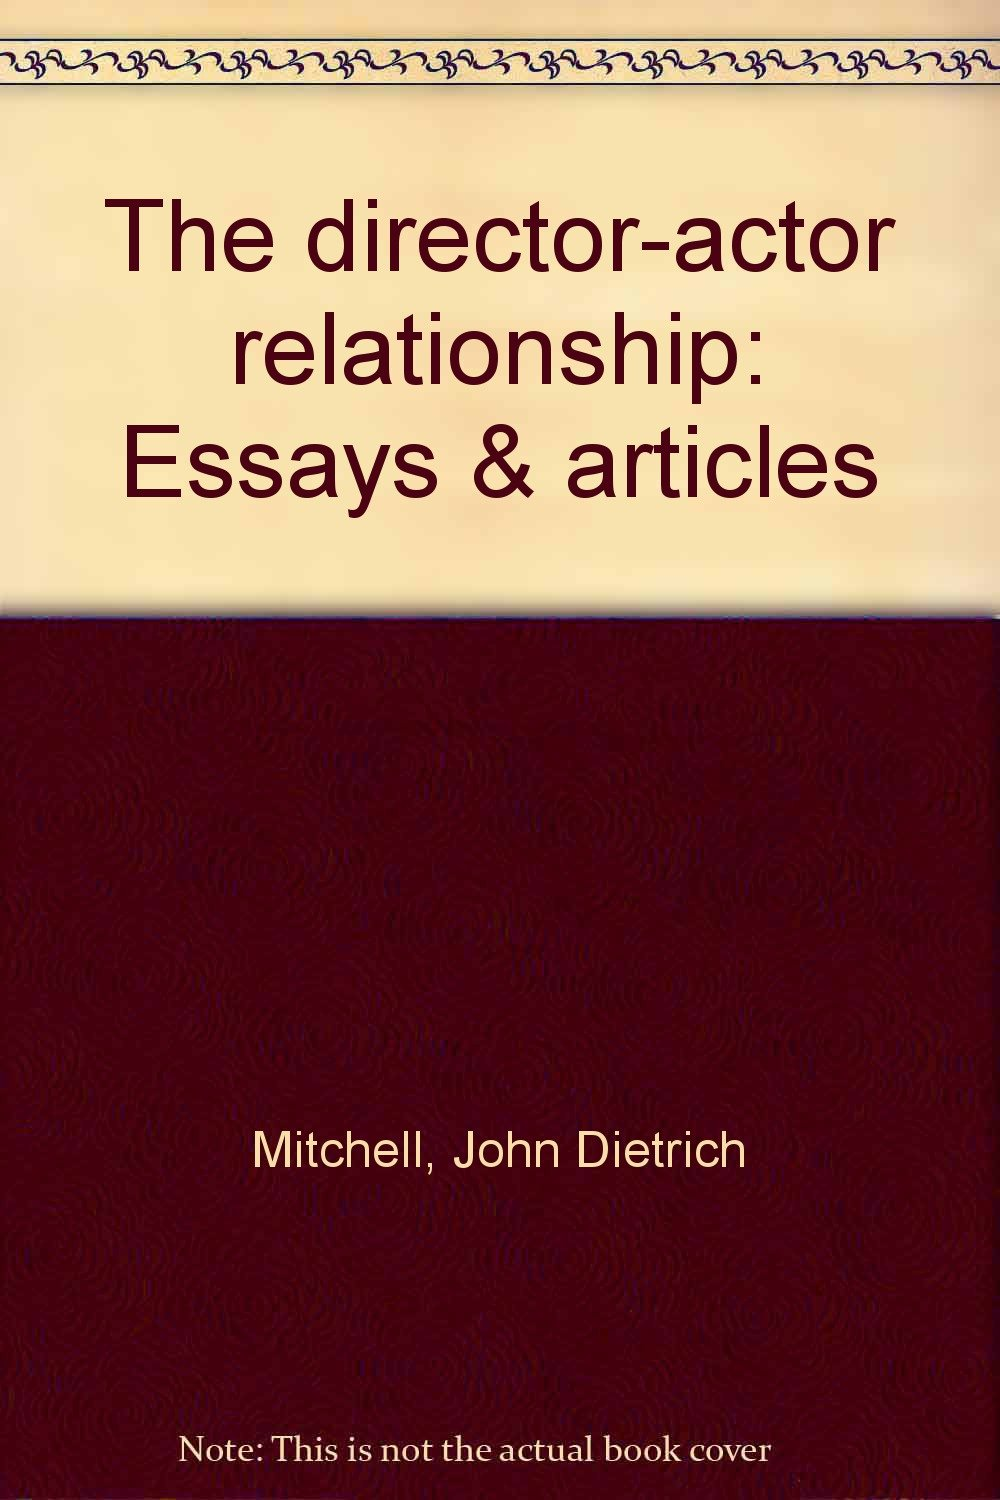 The director-actor relationship: Essays & articles